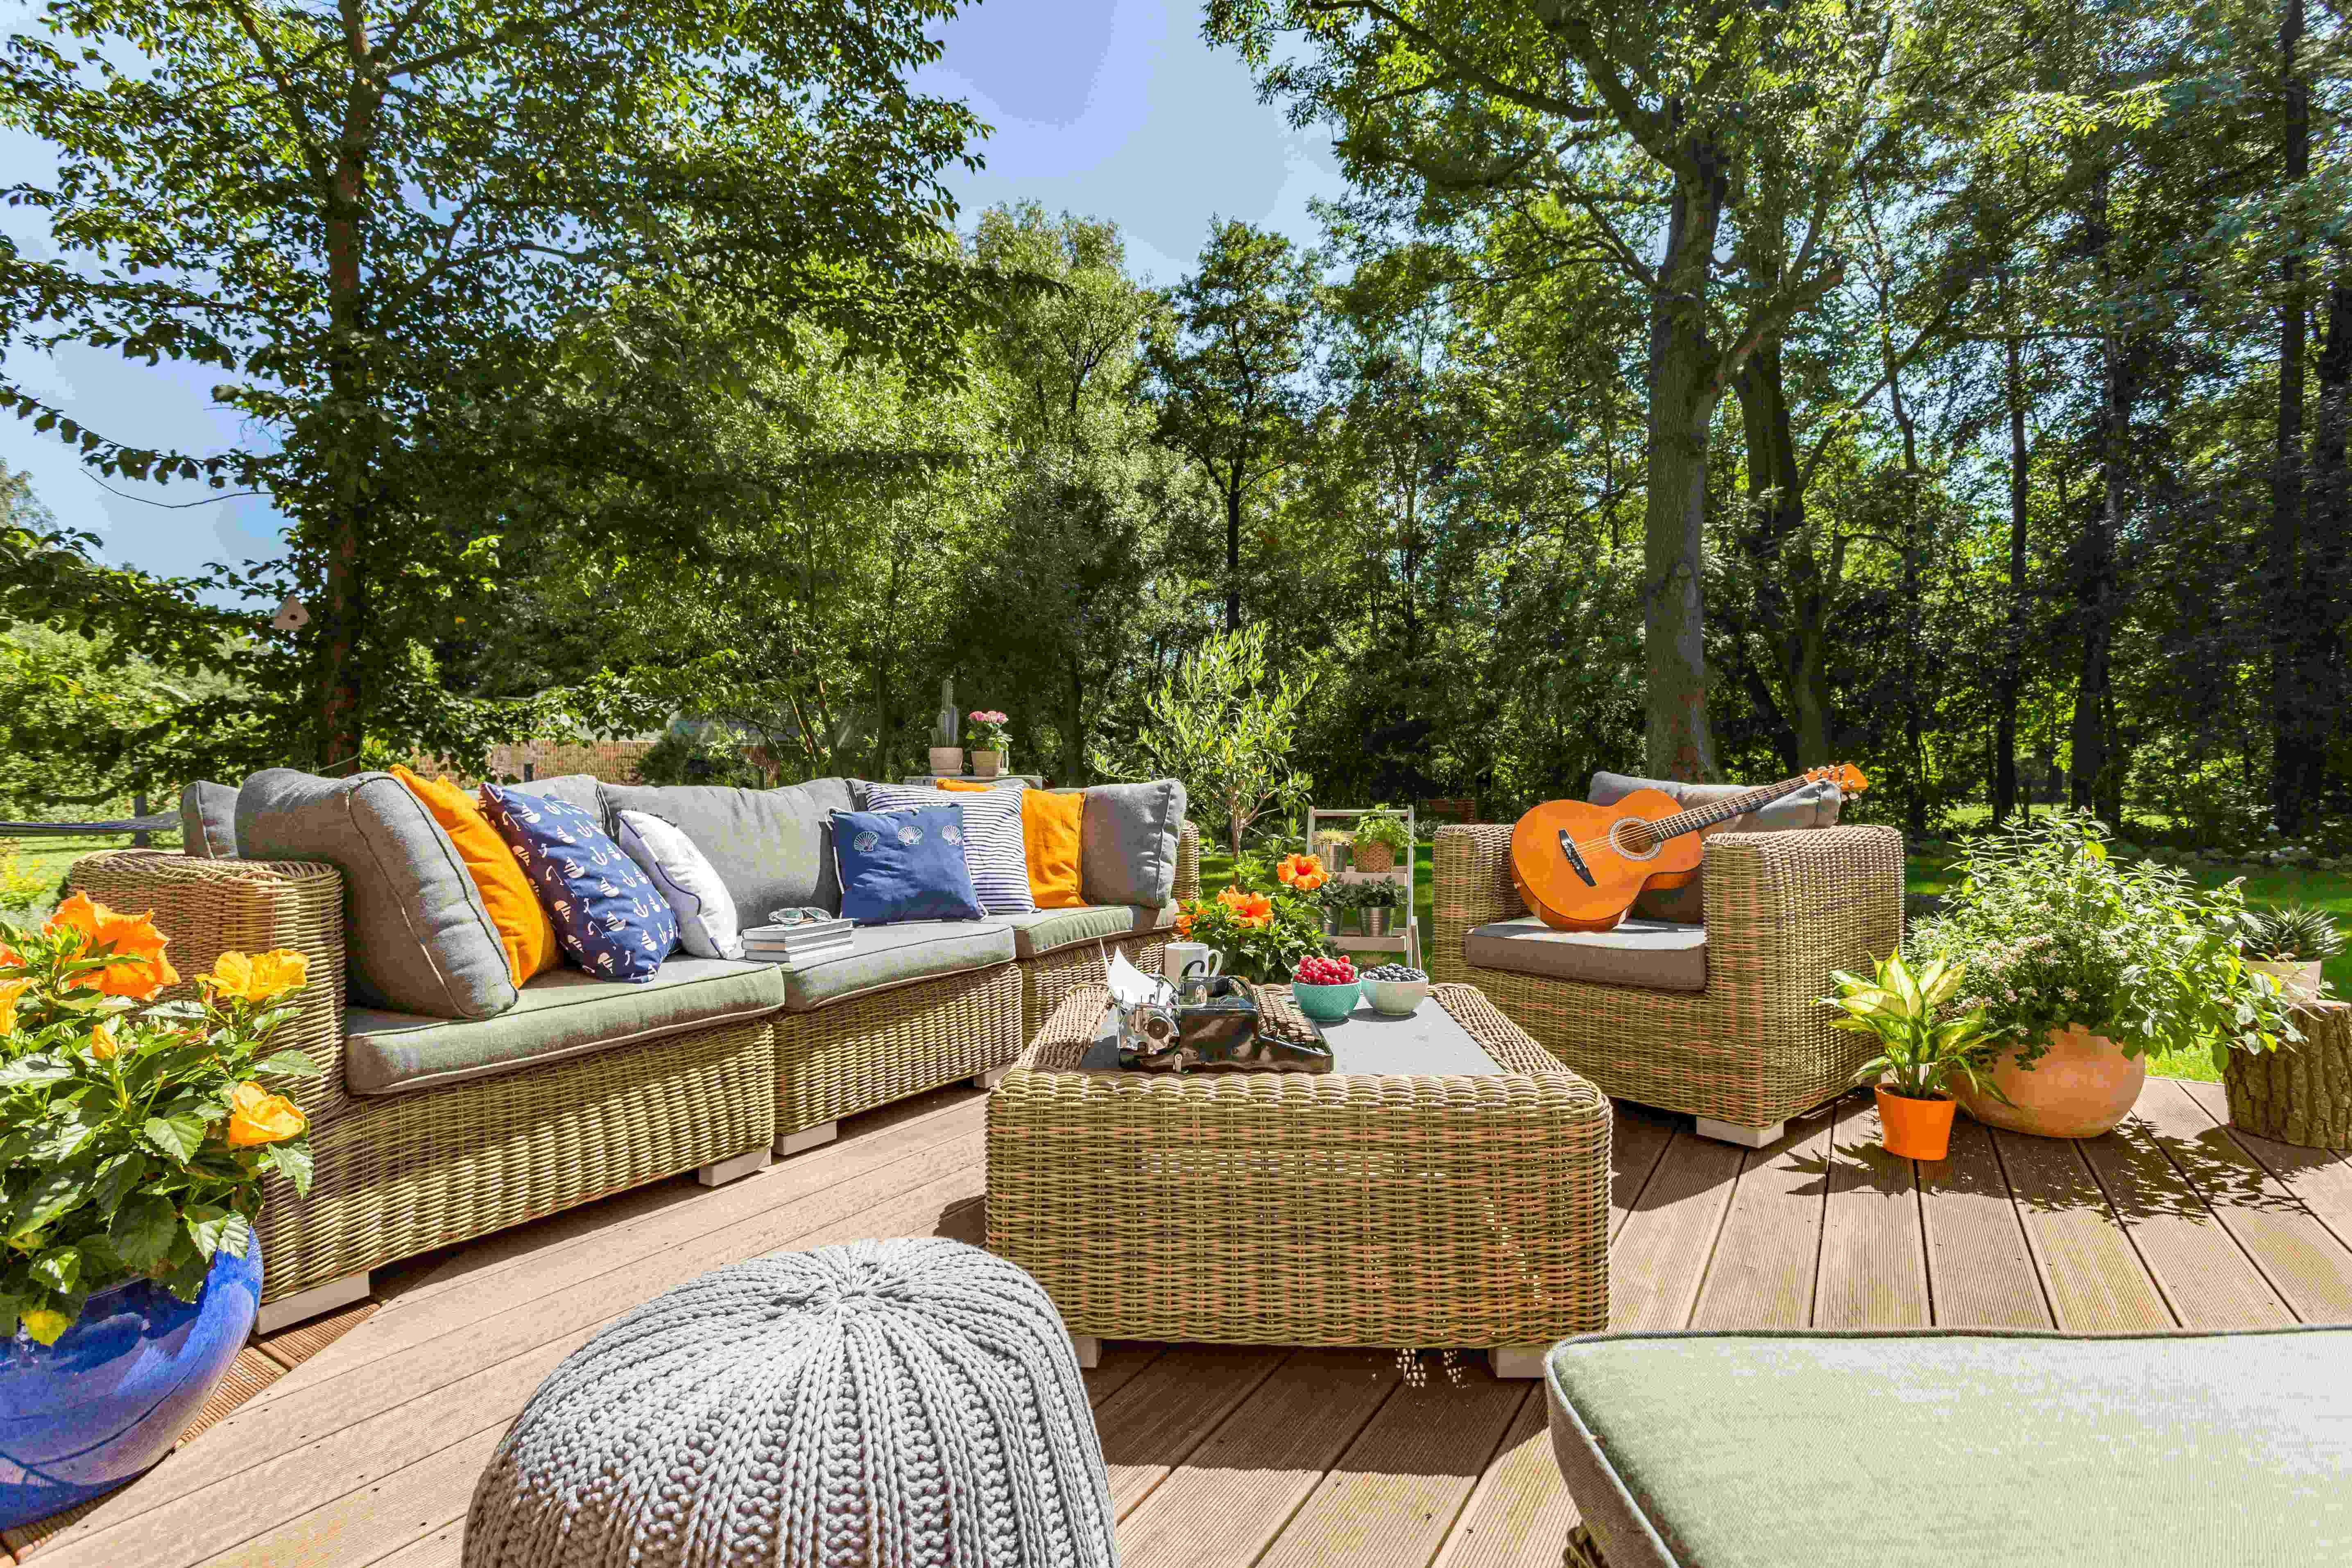 Garden landscaping, decor and style